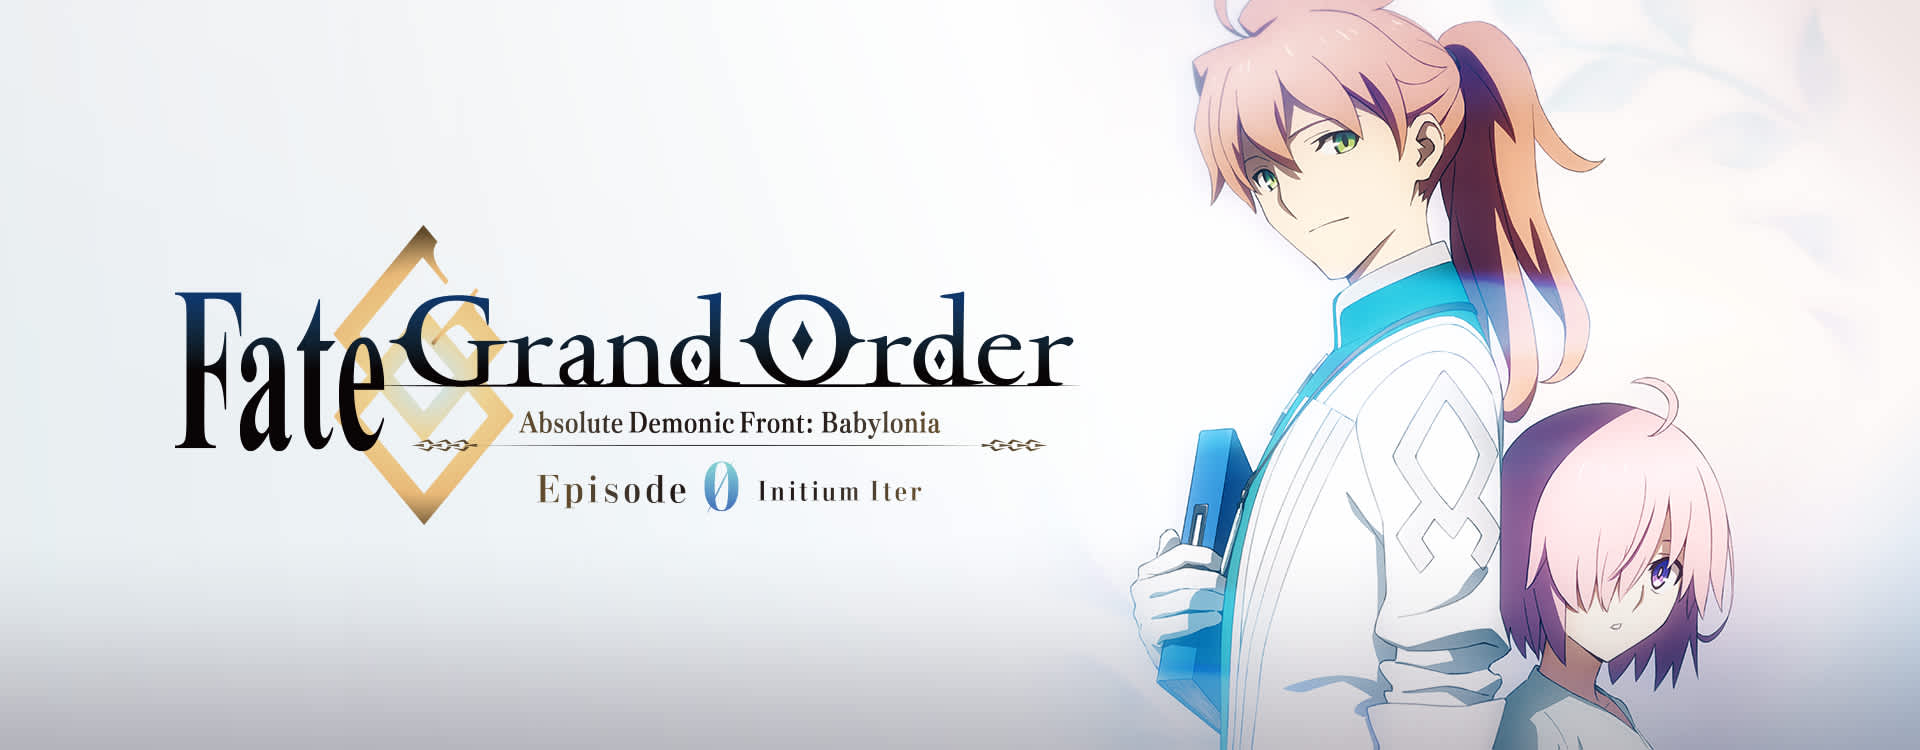 Watch Fate/Grand Order Absolute Demonic Front: Babylonia